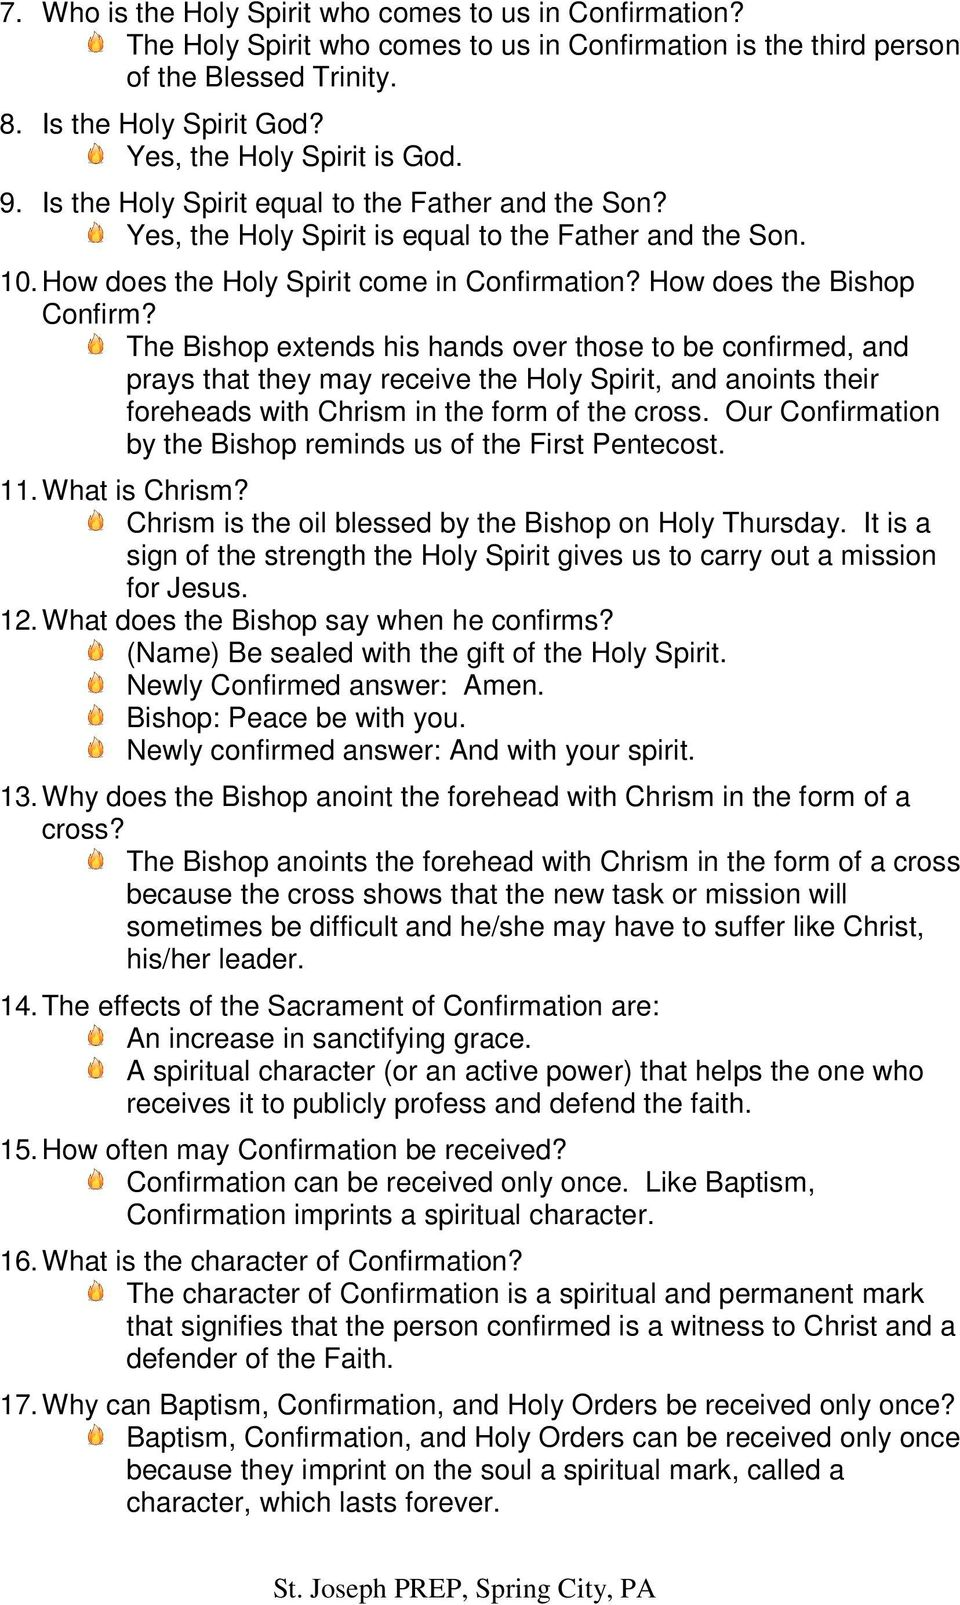 How does the Bishop Confirm? The Bishop extends his hands over those to be confirmed, and prays that they may receive the Holy Spirit, and anoints their foreheads with Chrism in the form of the cross.